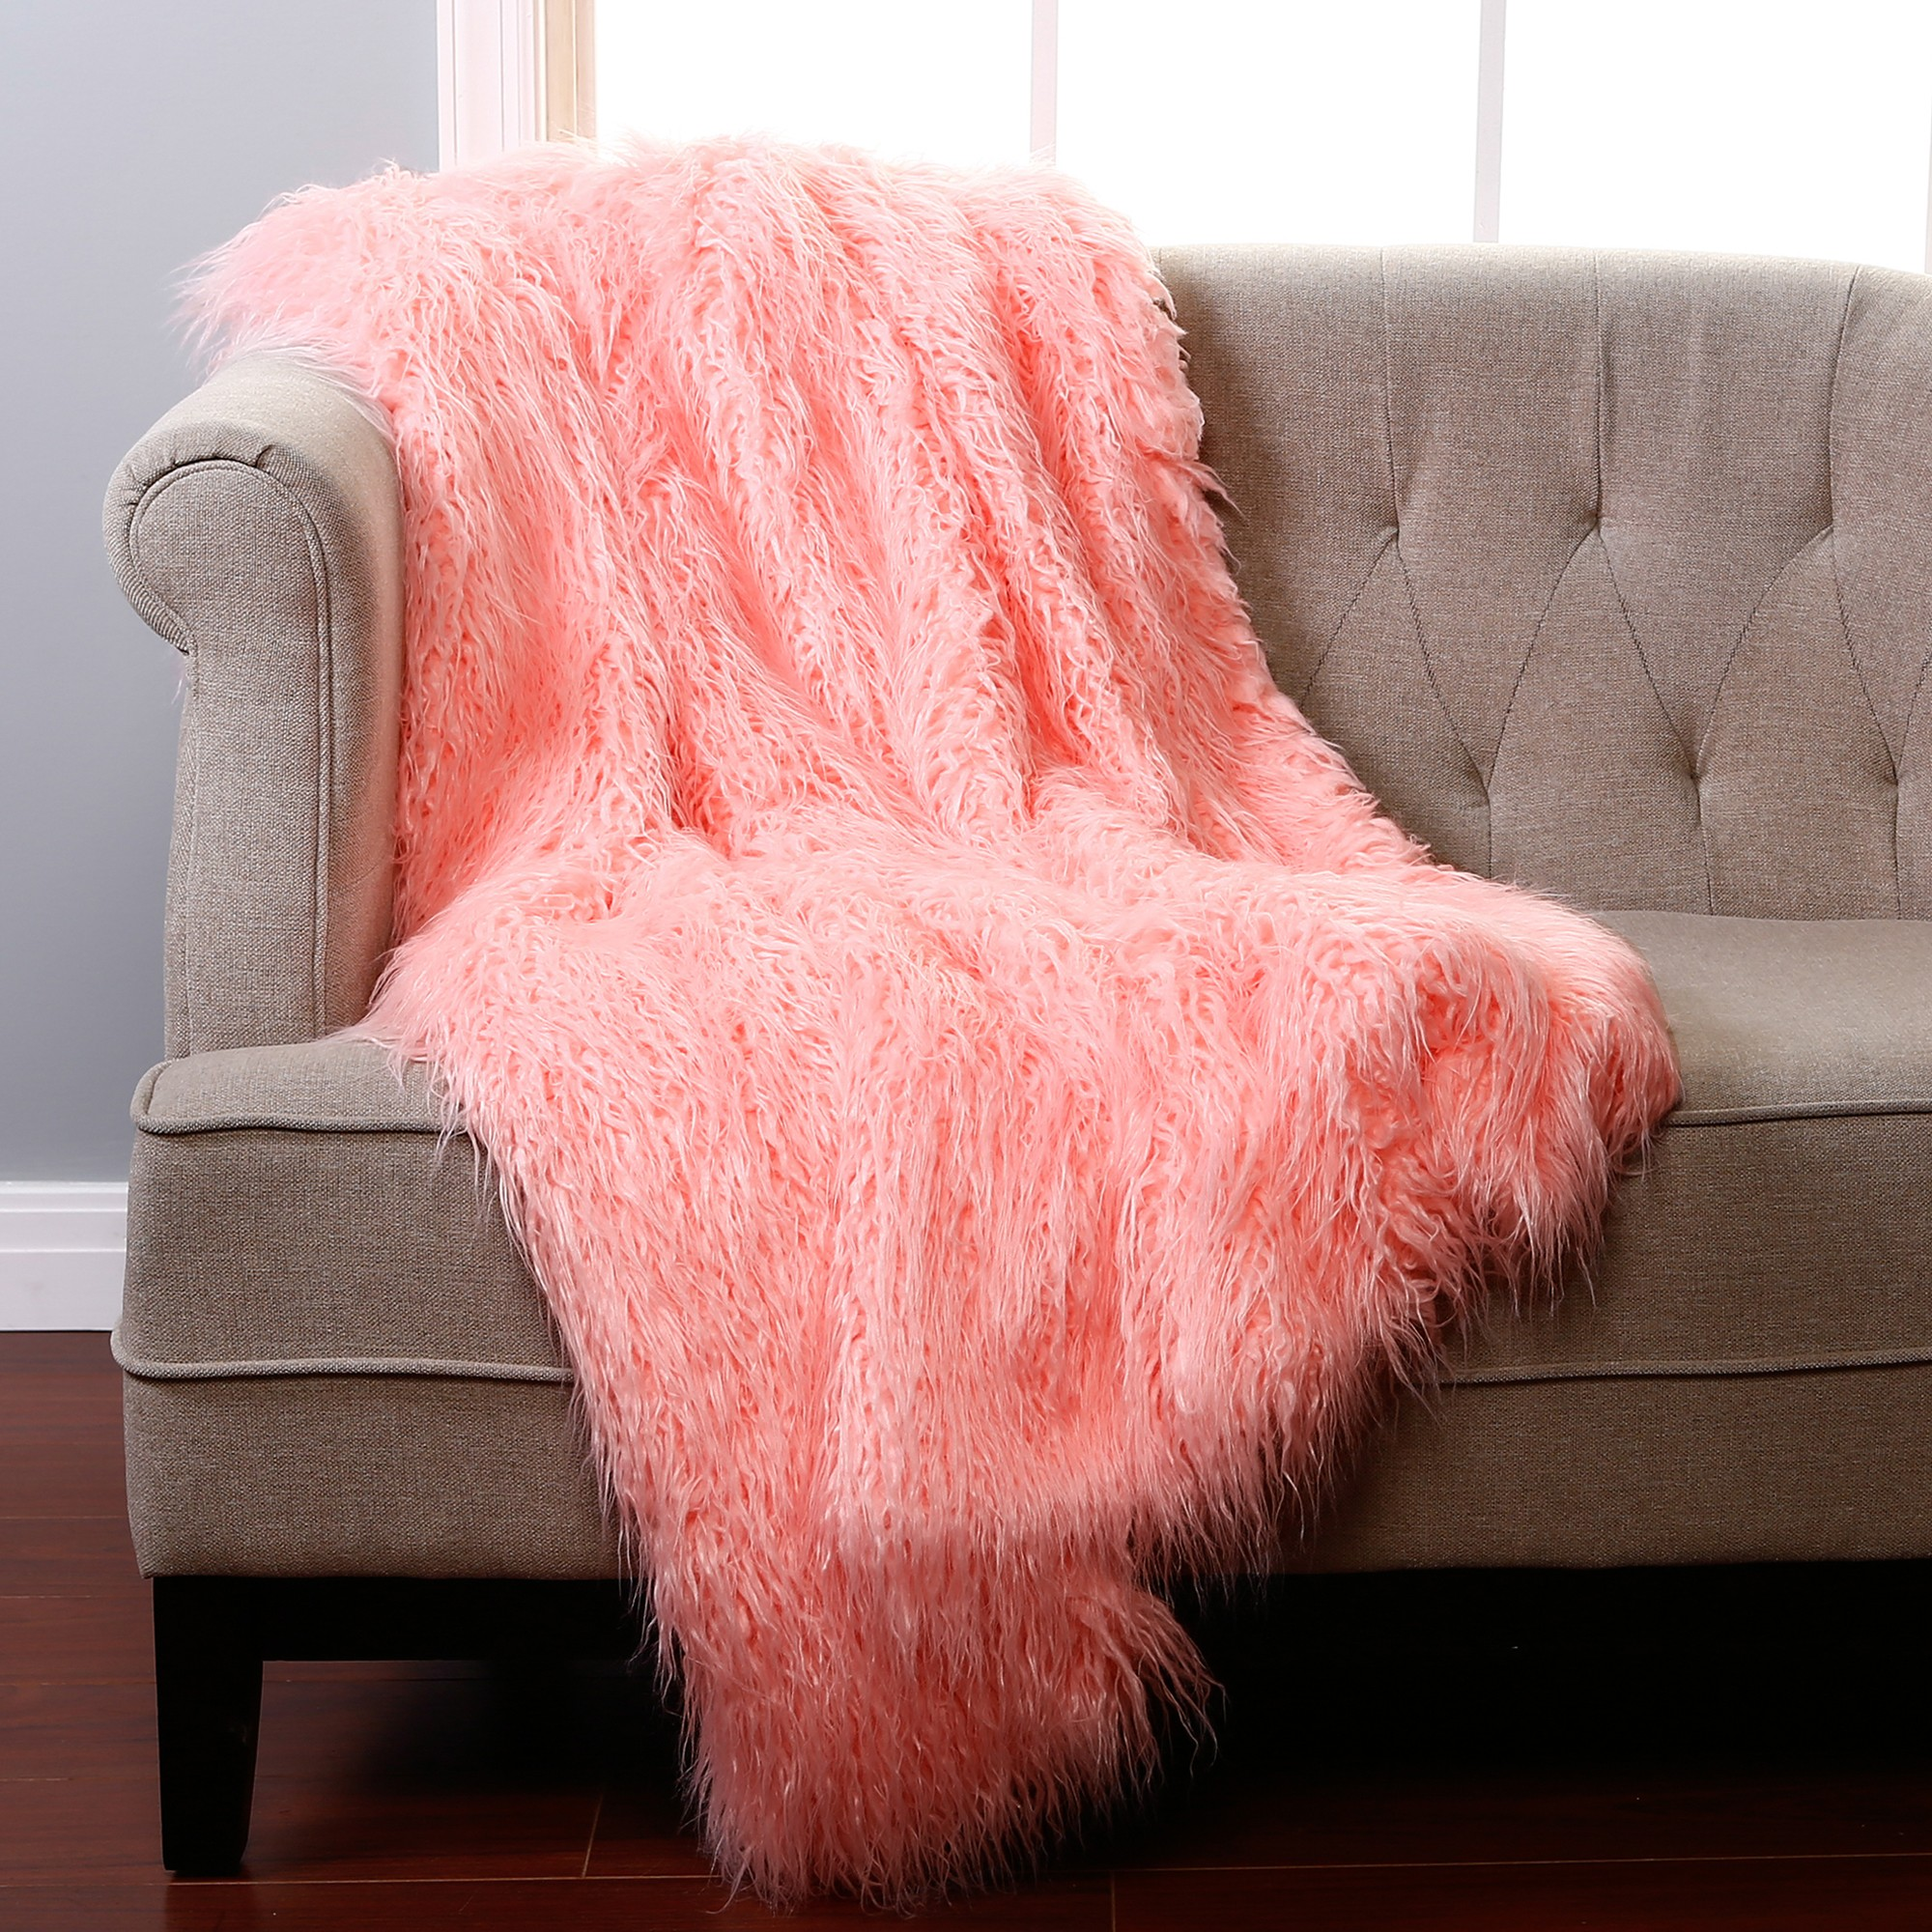 Pink Throw Faux Sheepskin Throw Chasing Luxury In Fashionable Look